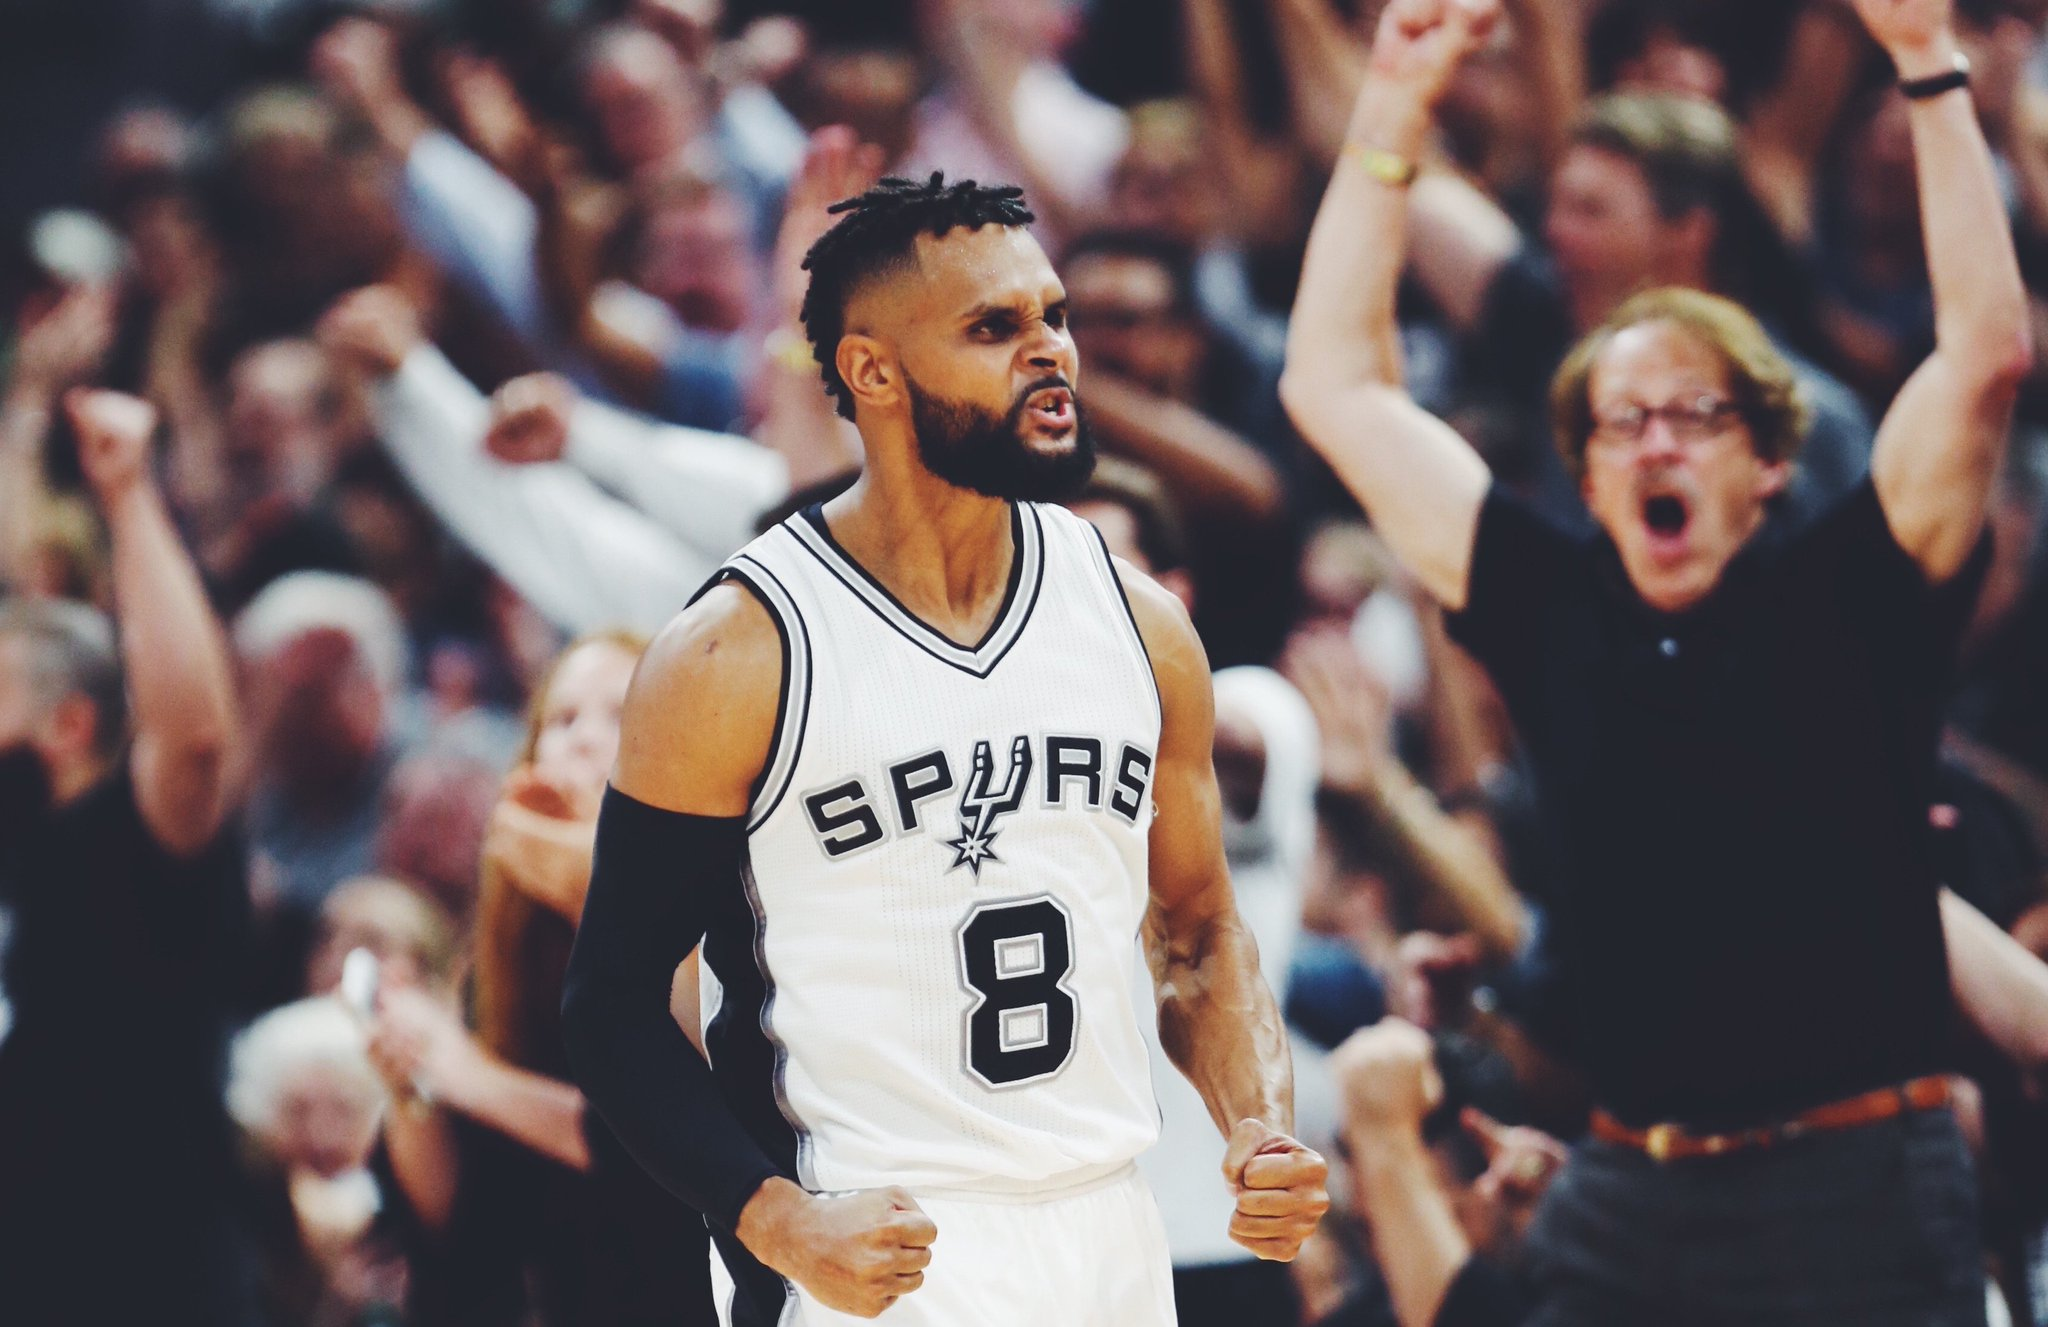 HE'S BACK, BALA, HE'S BACK!   We've officially re-signed @Patty_Mills » https://t.co/TOEYCCHYVw https://t.co/WrrJPJPdrN